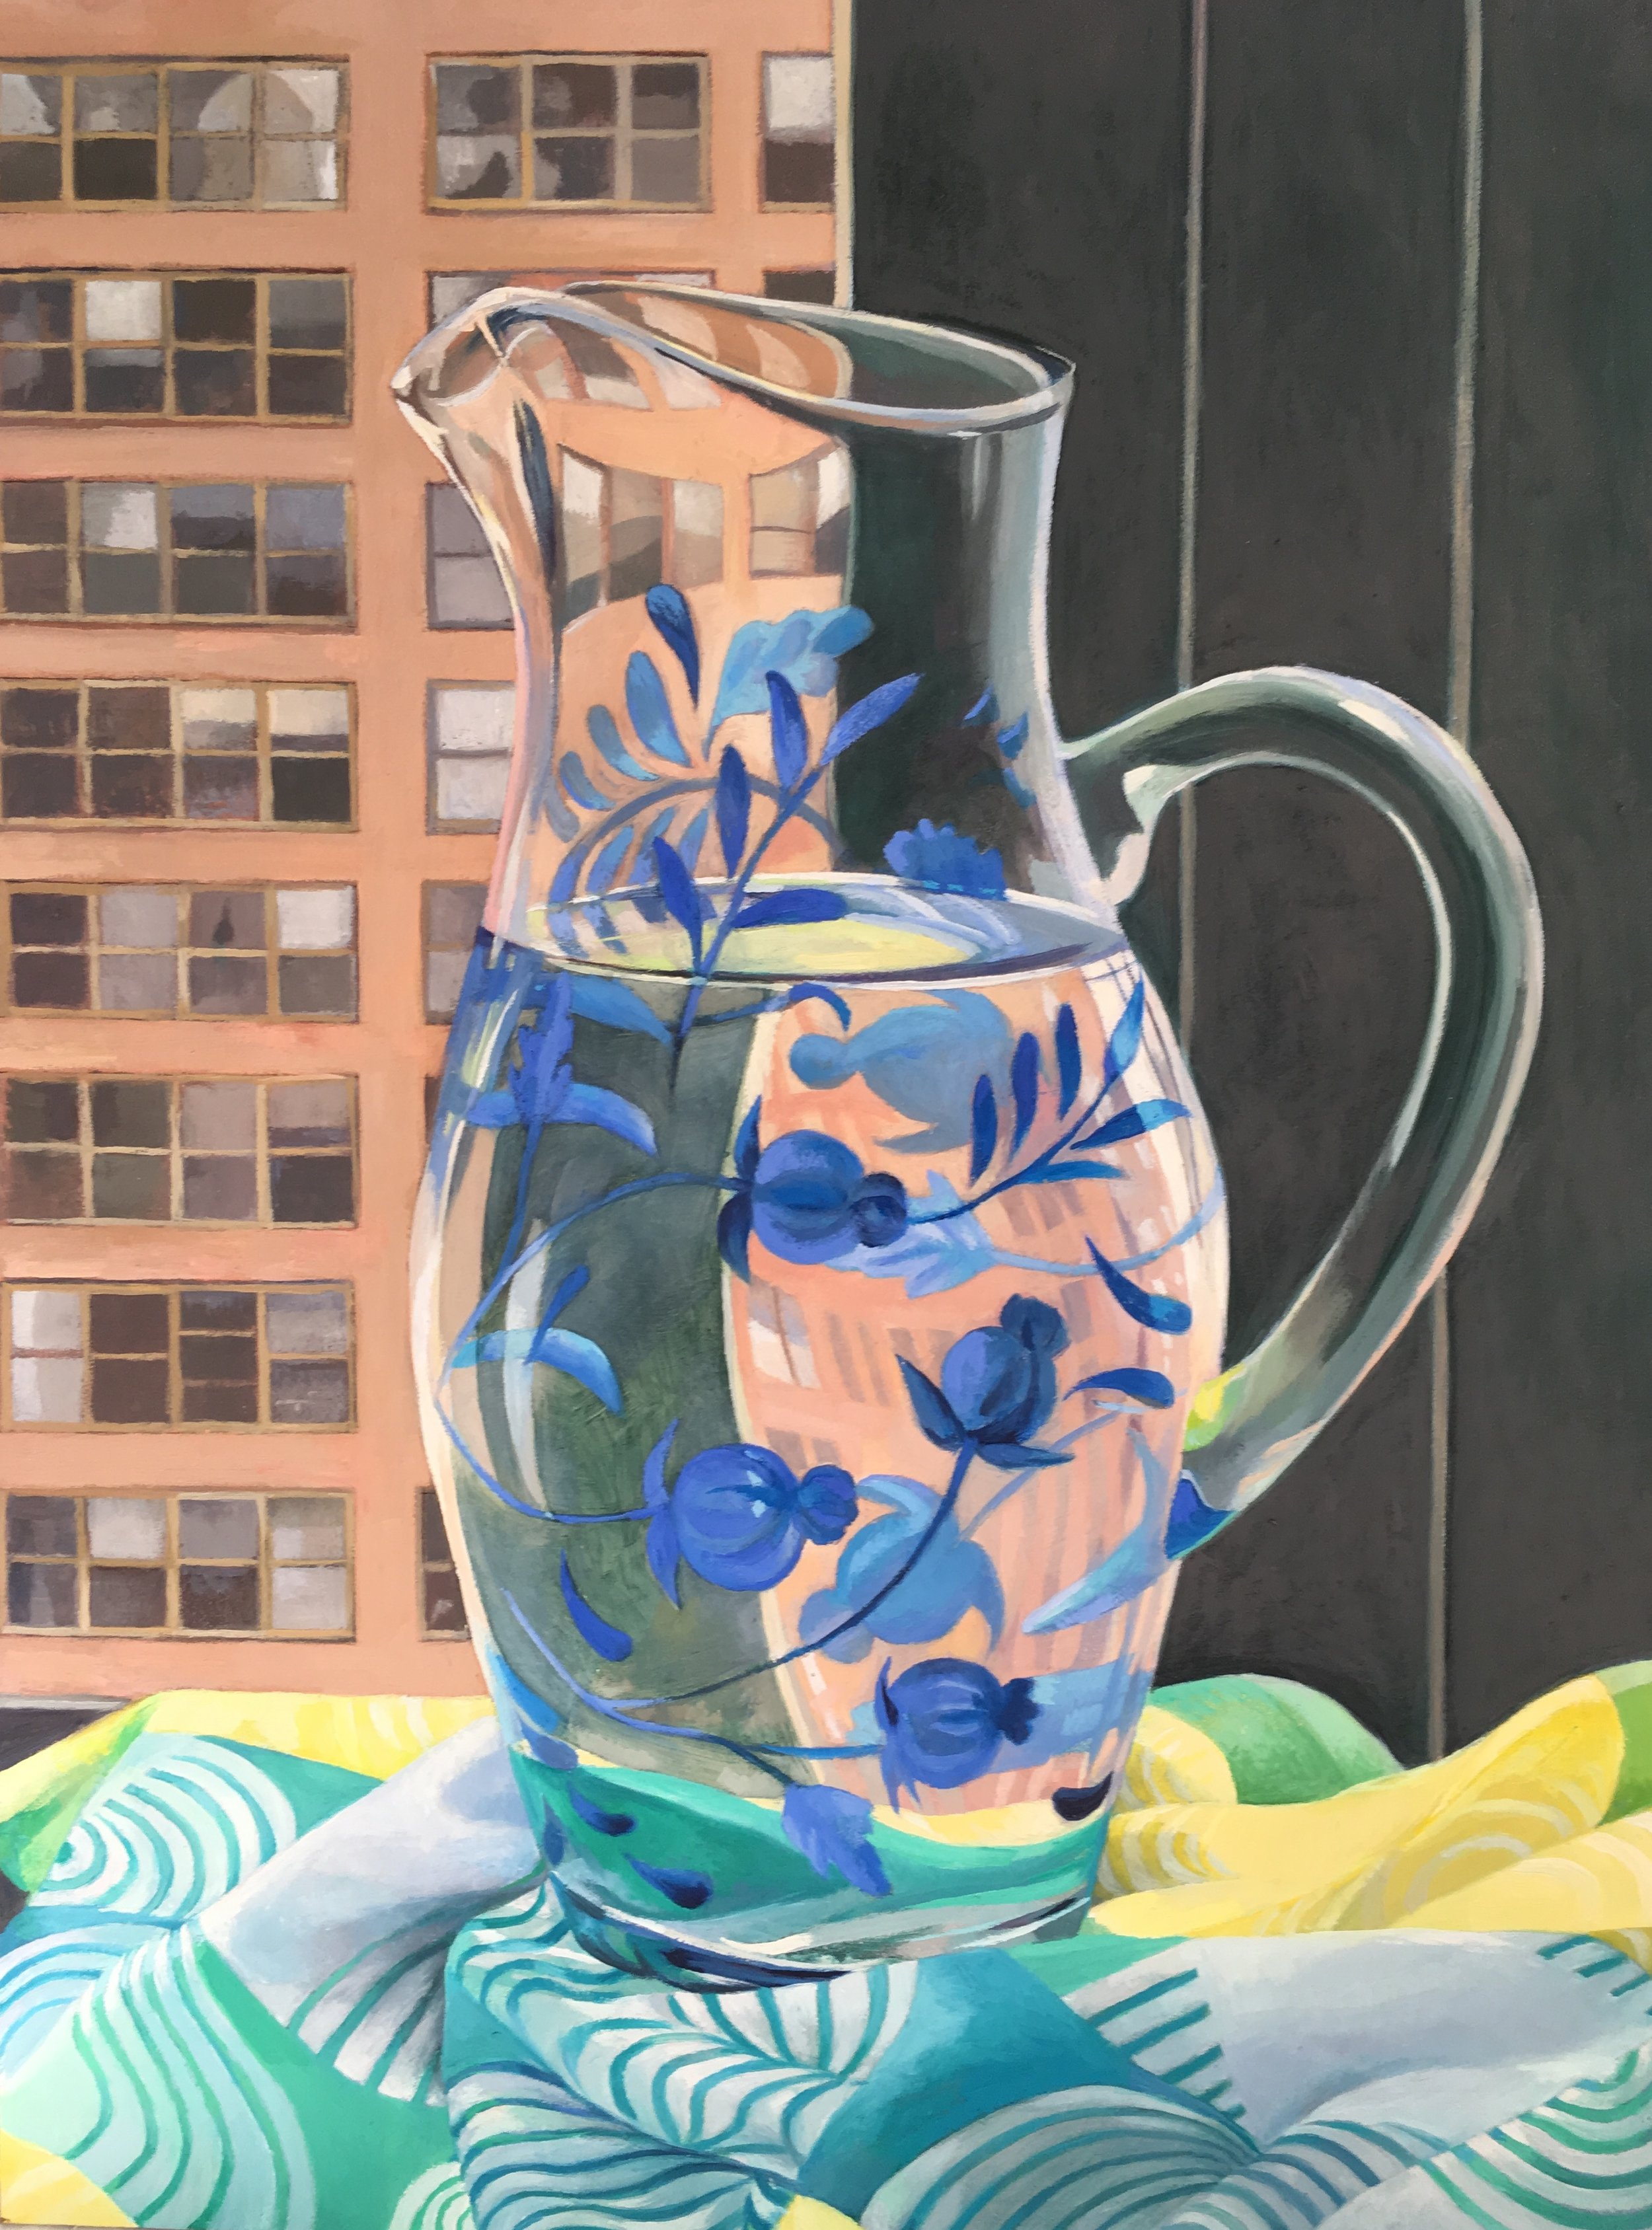 Flowered Vase in a City Window